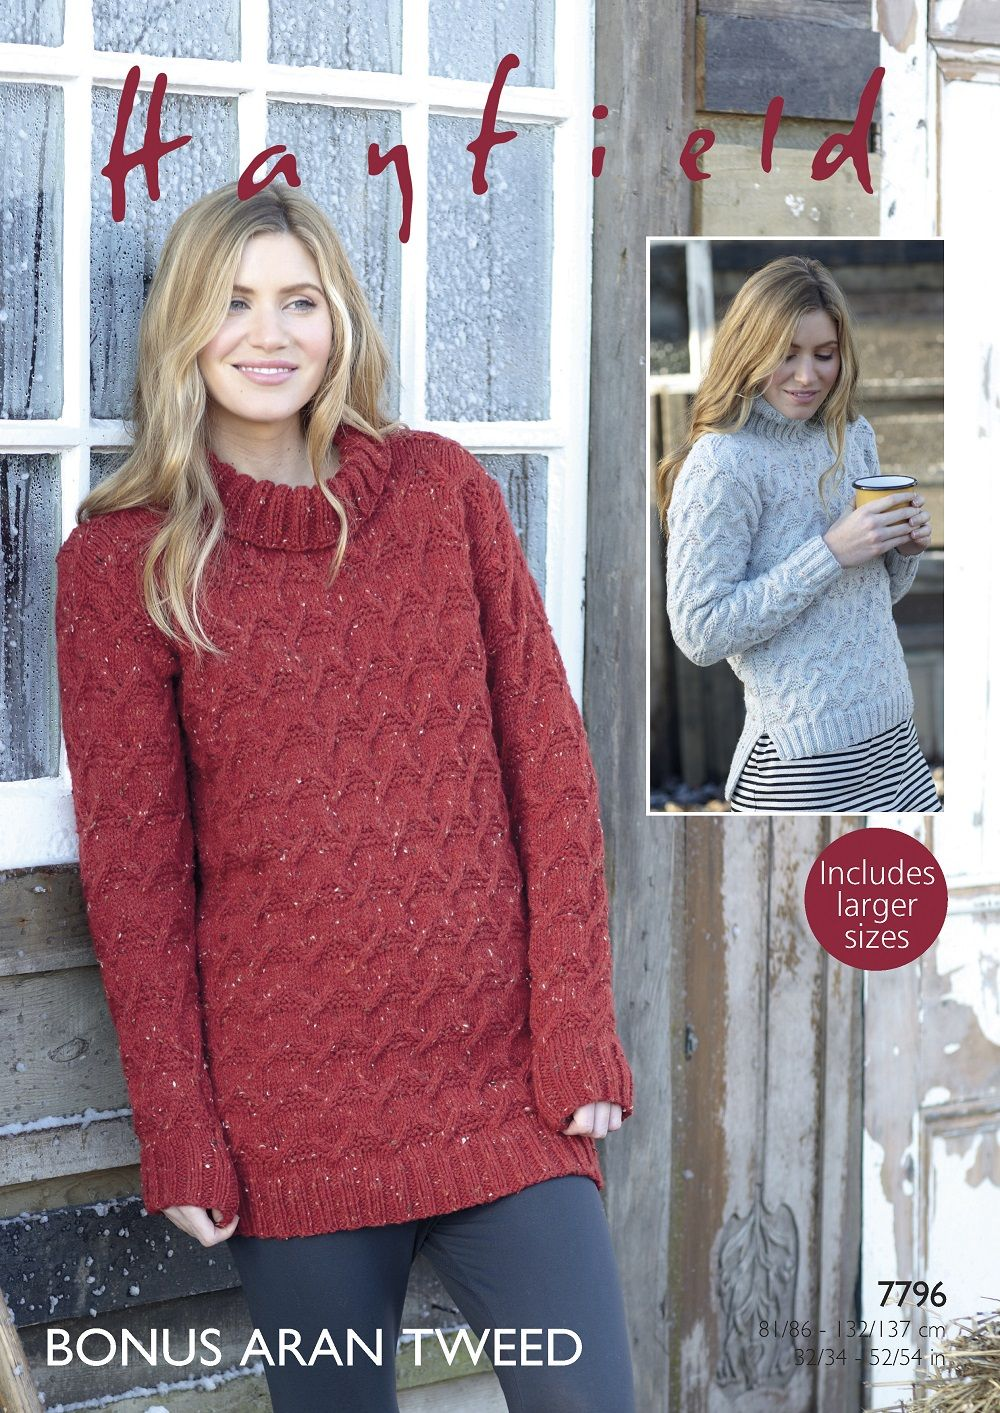 7c596a27ea08 Hayfield Ladies Sweaters knitting pattern in Bonus Aran Tweed 7796P PDF